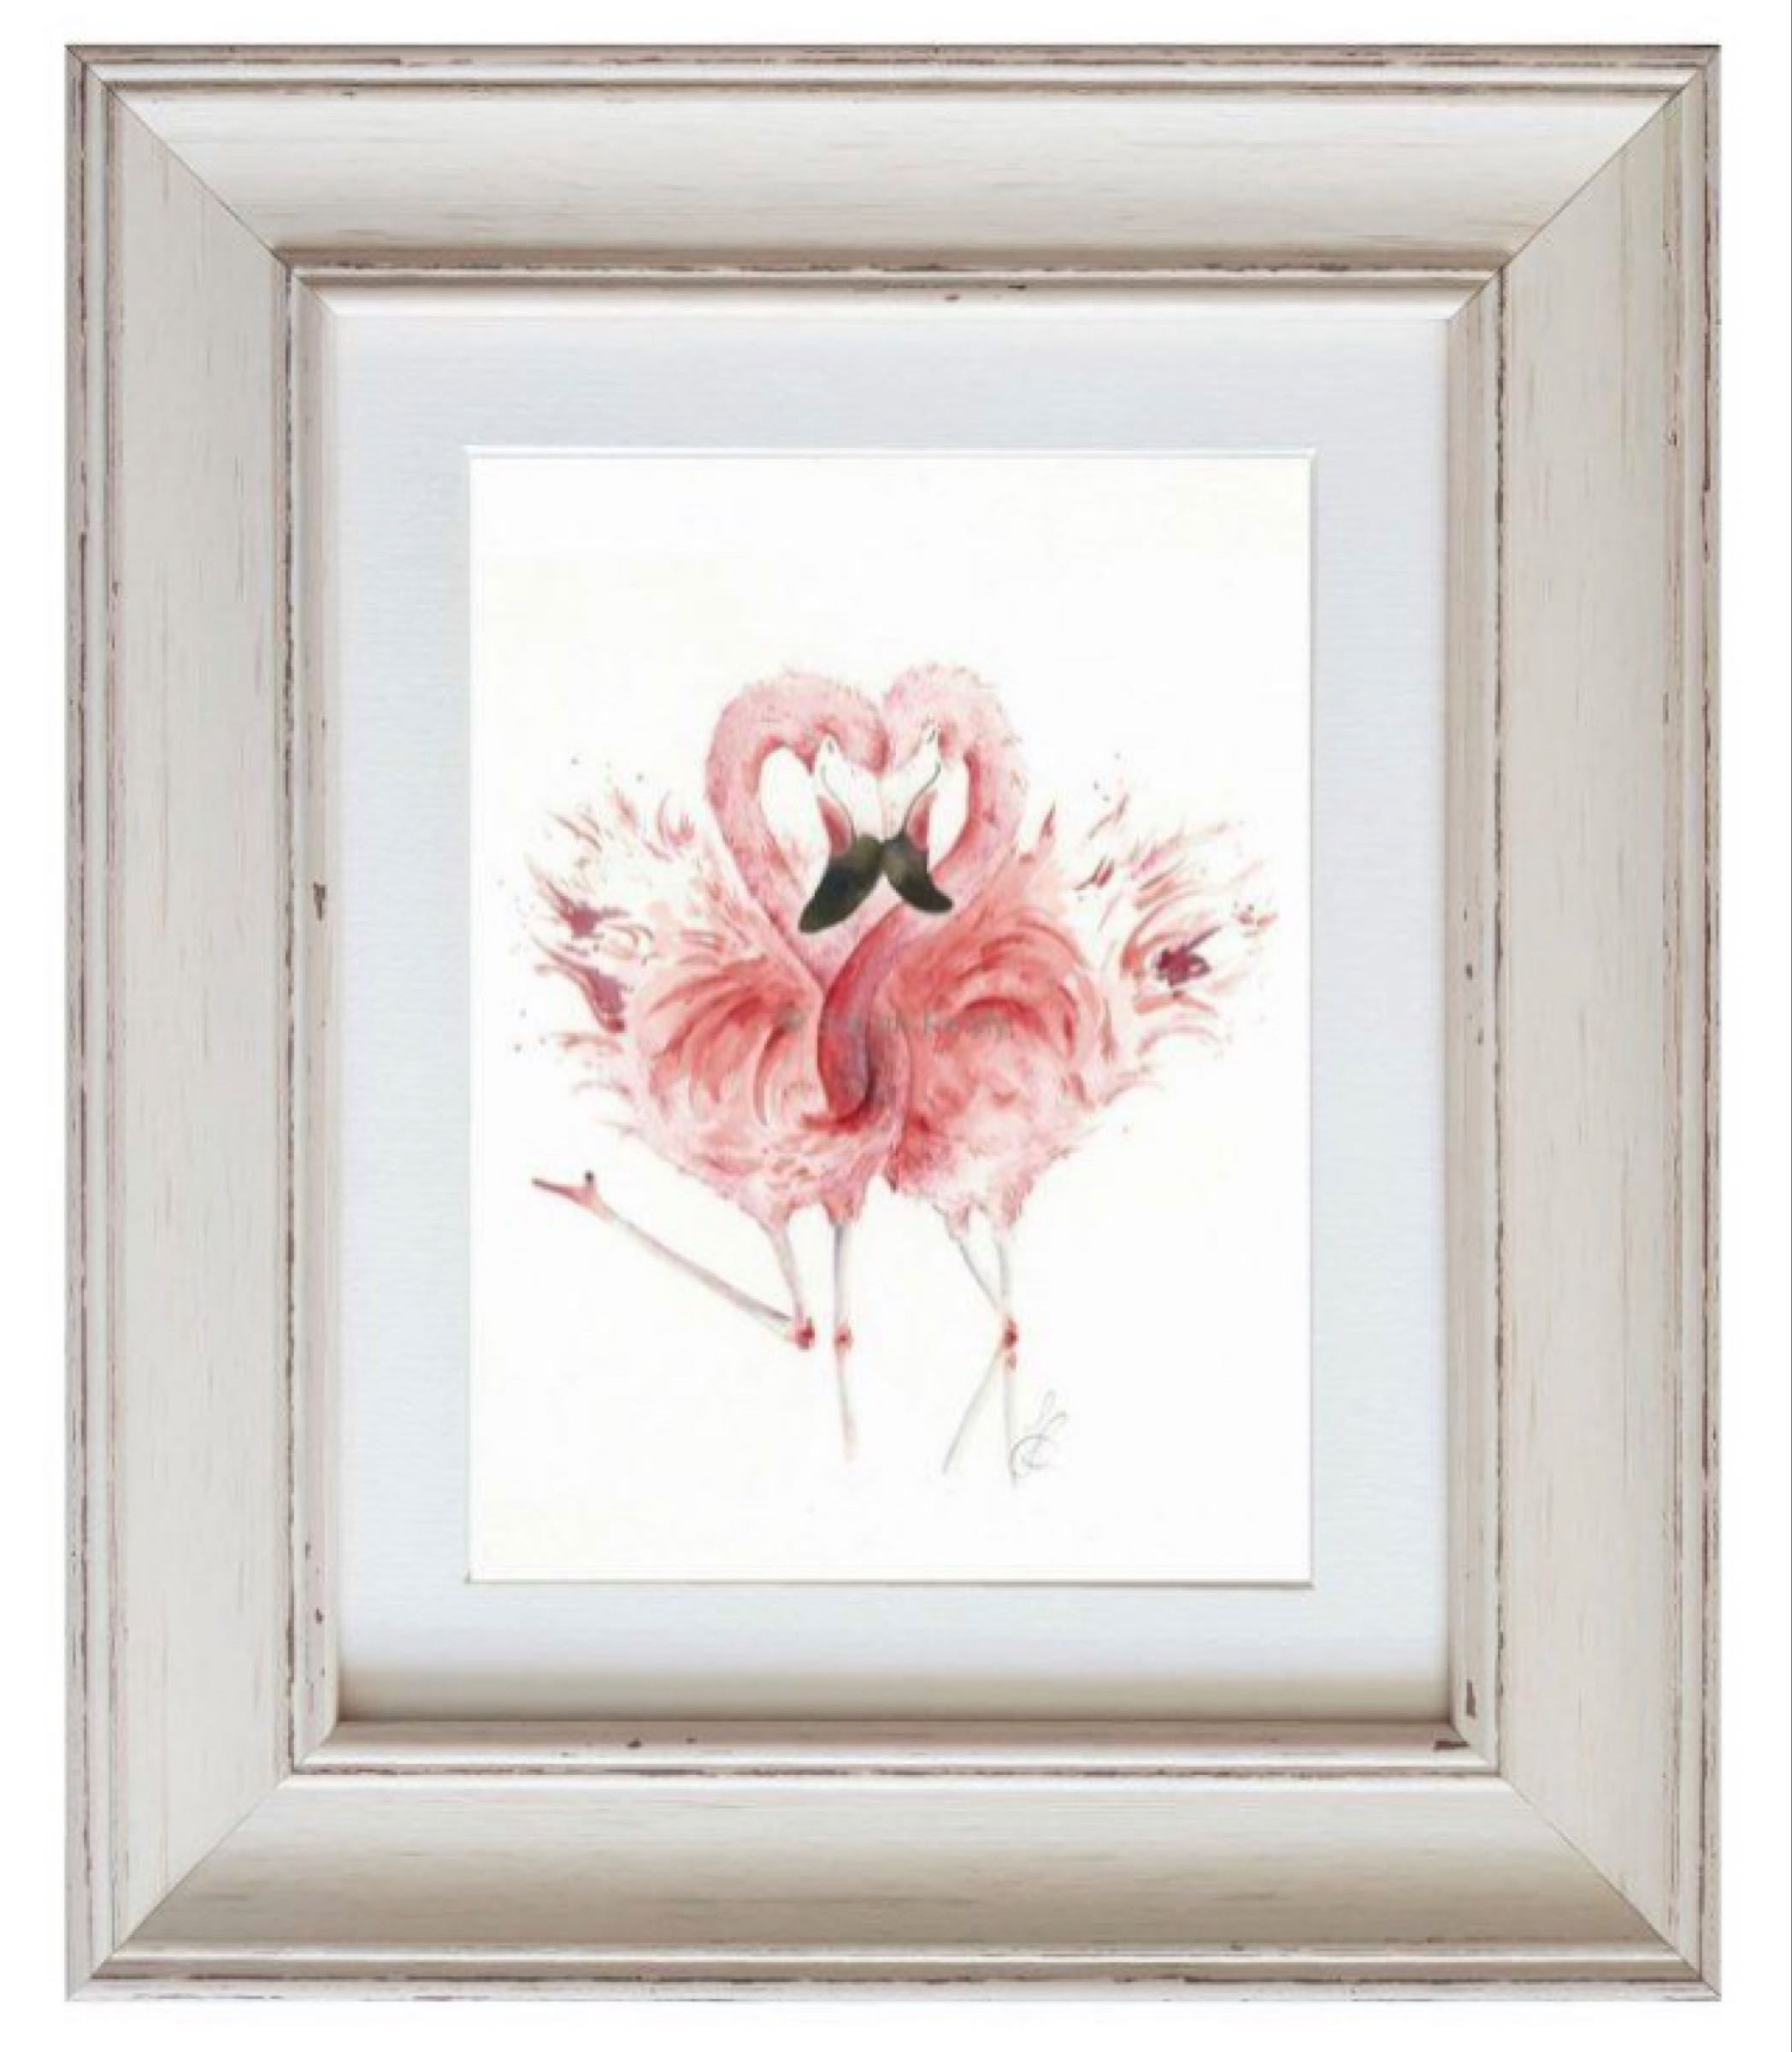 Pretty in Pink Framed Print by Sarah Reilly  28cmx33cm